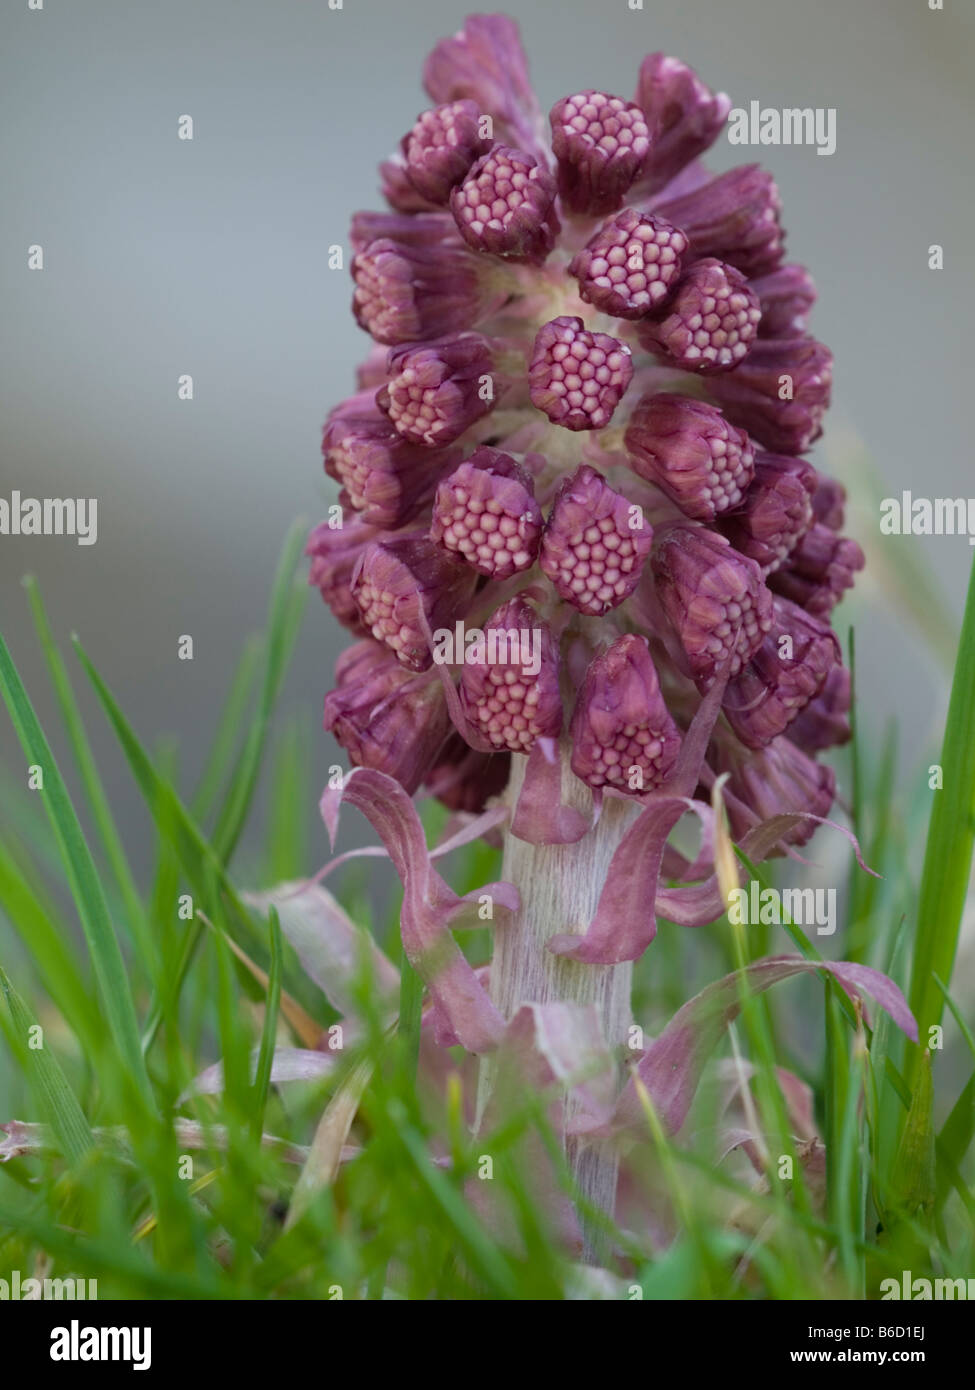 Close-up of lavenders - Stock Image